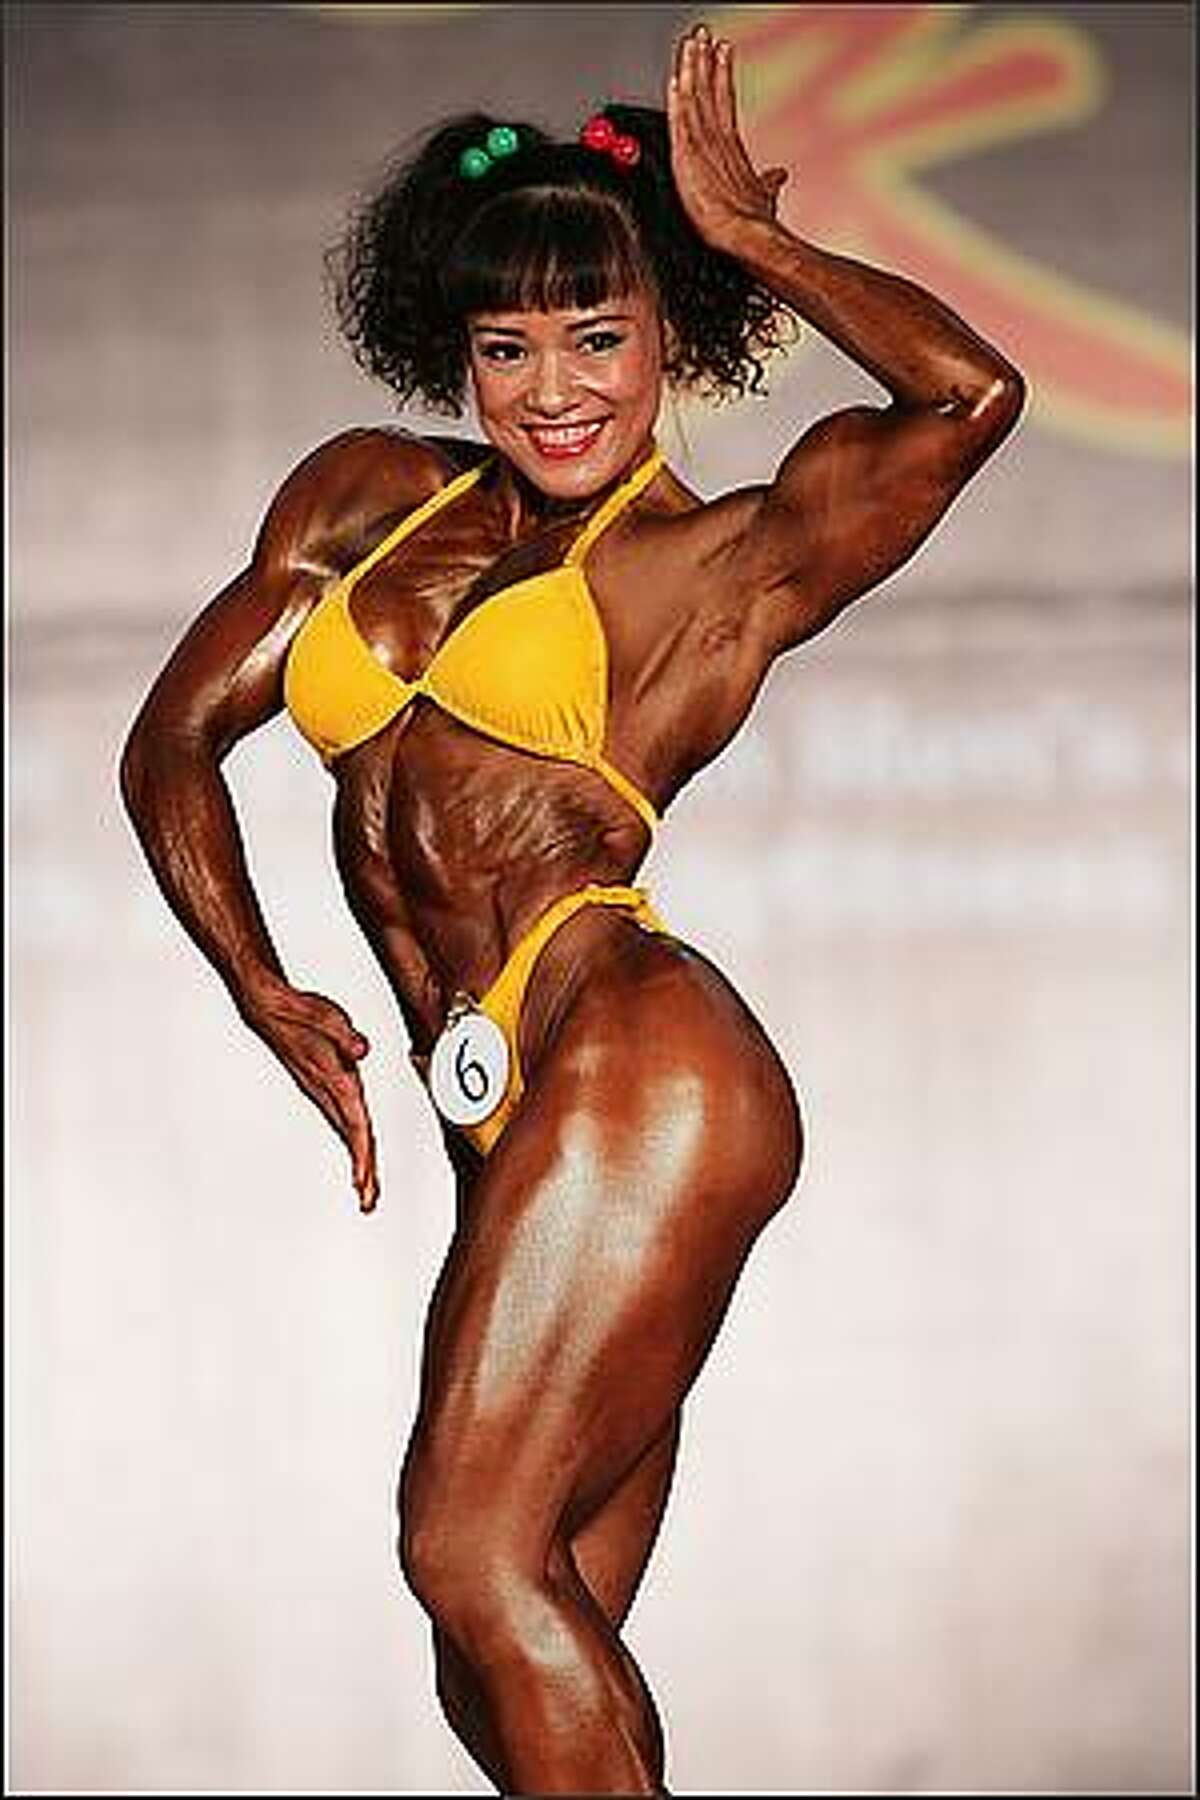 A contestant poses at the 2008 Asian Bodybuilding And Fitness Championships in Tseung Kwan O Sport Centre in Hong Kong, China. Competitors from 25 Asian countries and regions attended the event. (Photo by China Photos/Getty Images)